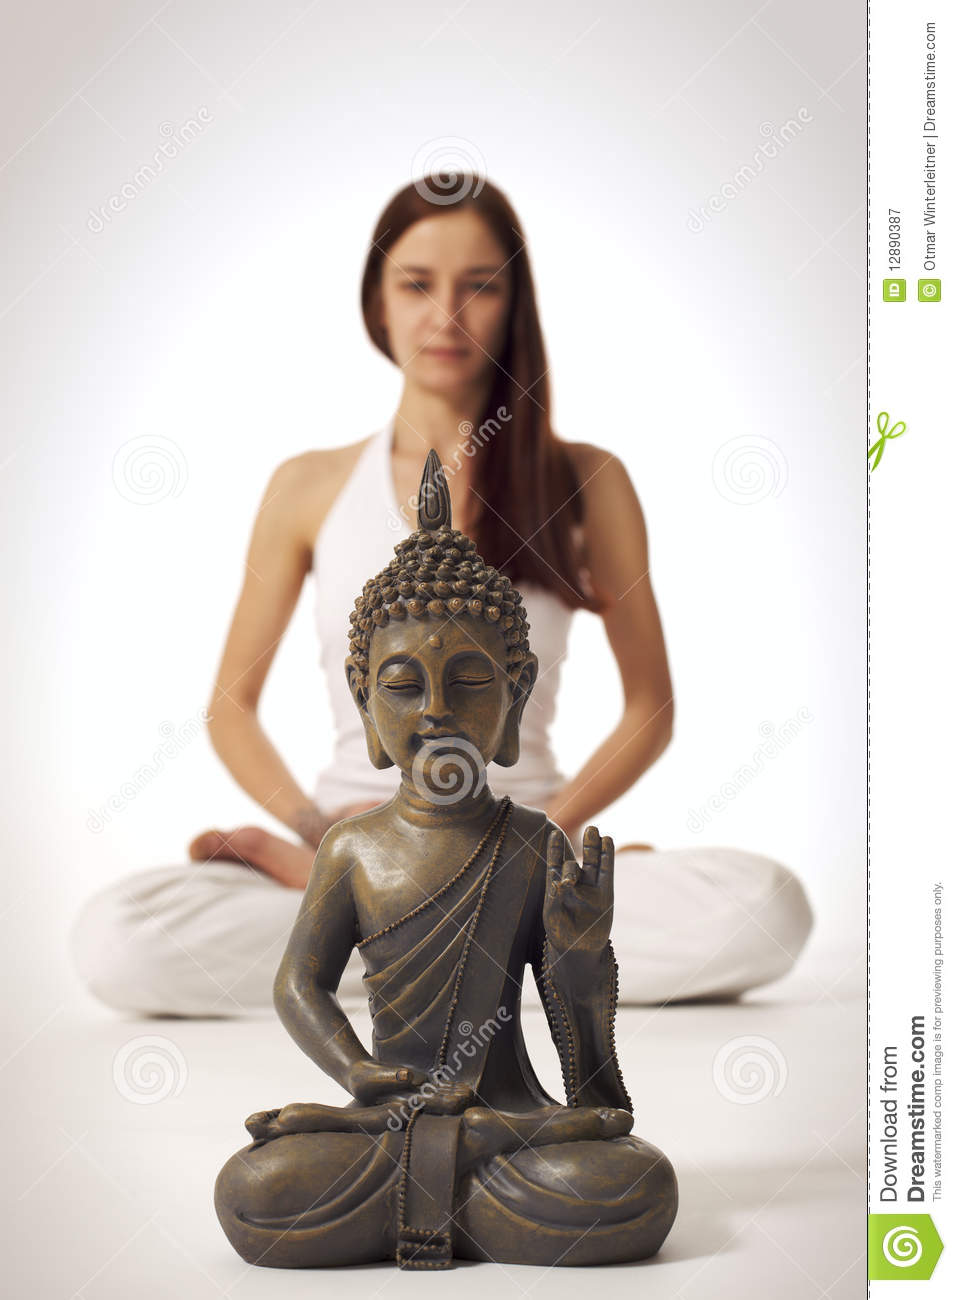 buddhist single women in mcconnelsville Buddhist dating online is a sure-shot way of finding the person that can really complete you there are no trials and errors when it comes to buddhist chat rooms online in all, if you're buddhist single and are ready to mingle on a personal and spiritual level, nothing can beat online buddhist chat rooms.